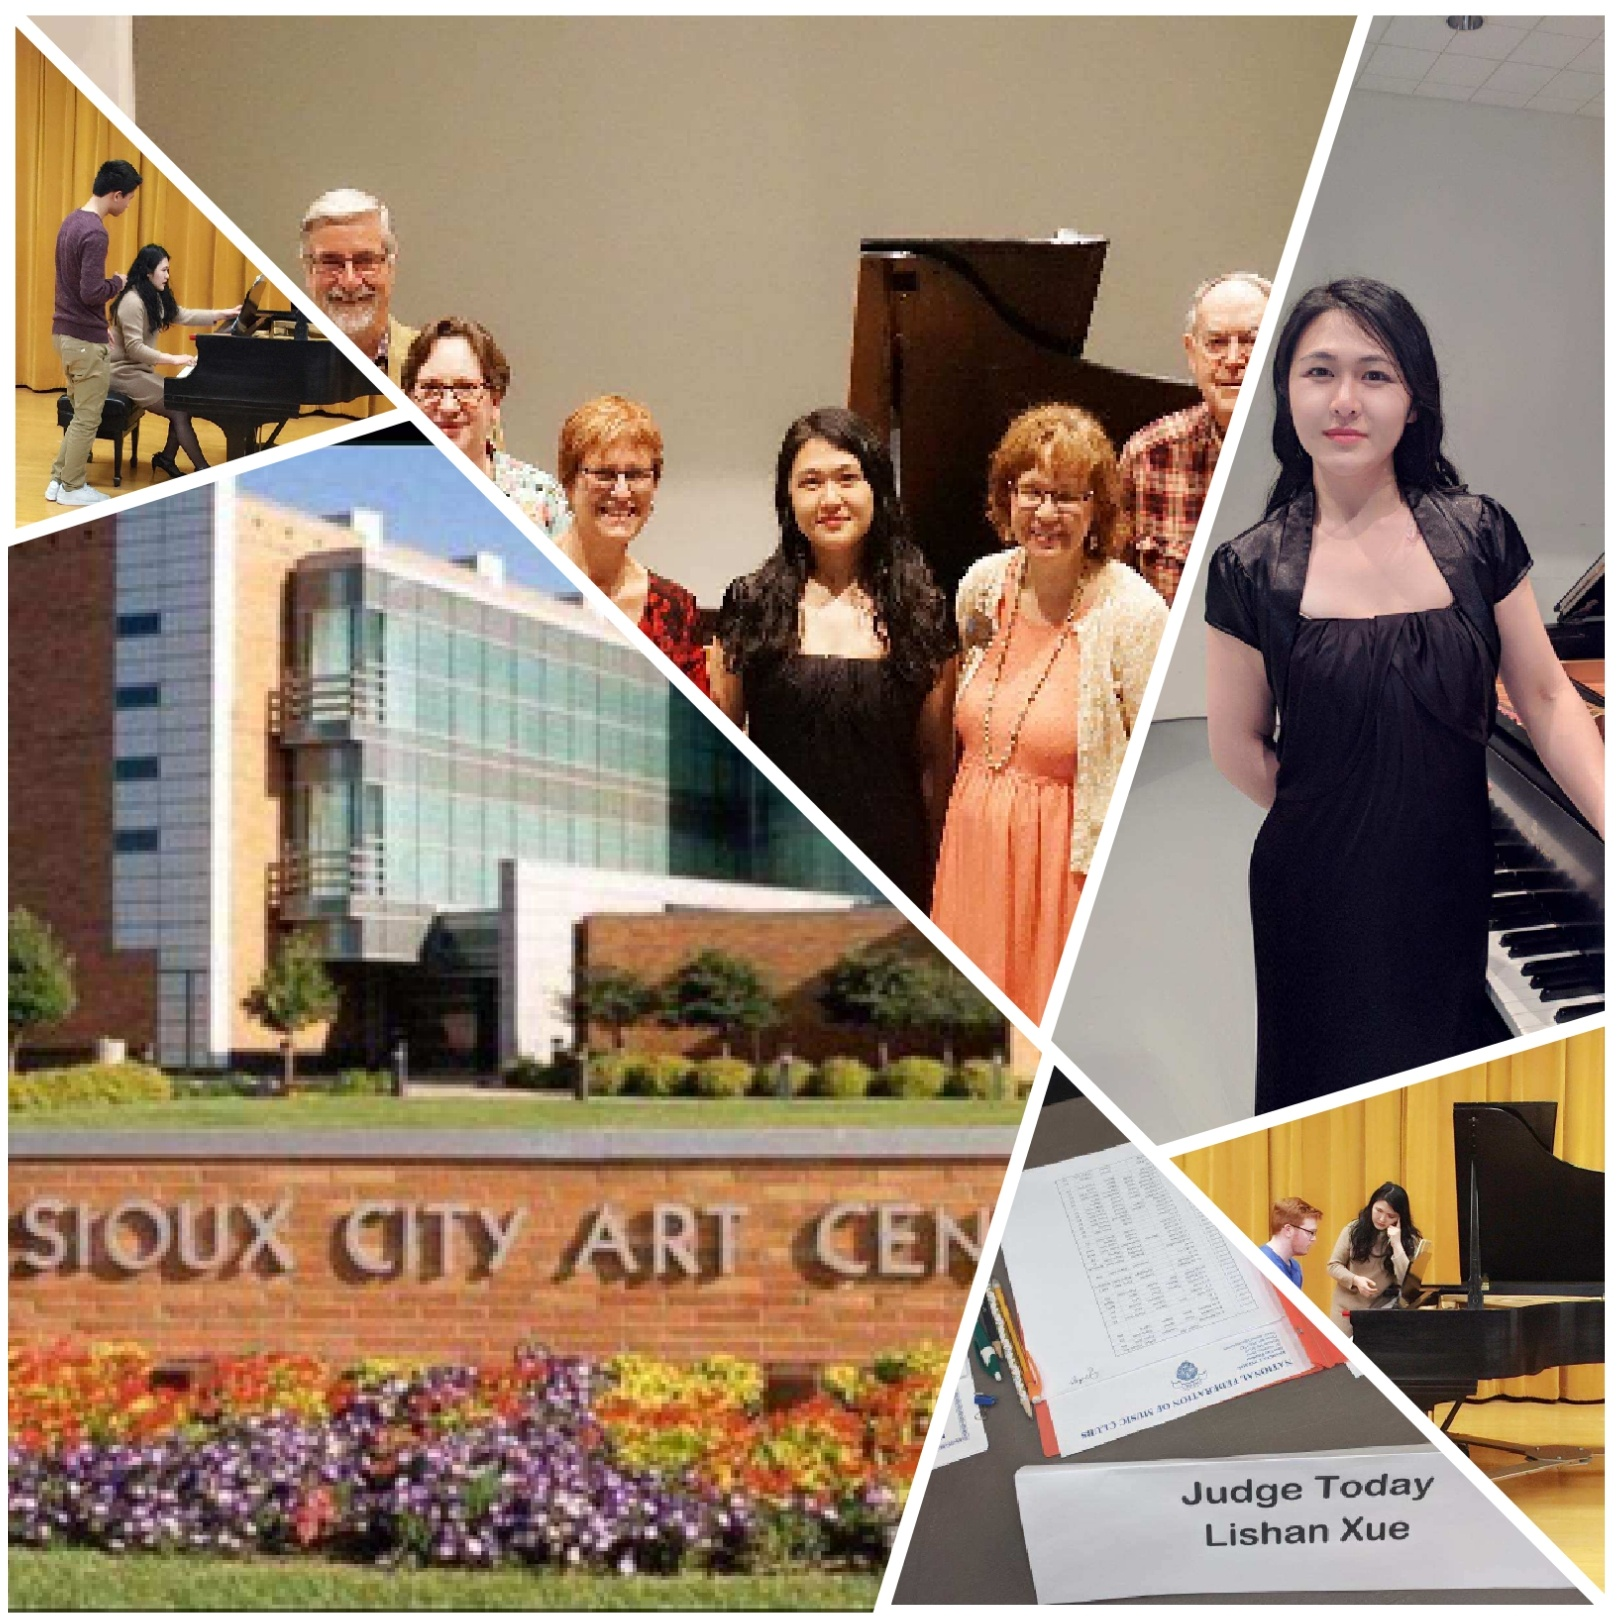 pictures about the activities in Sioux City